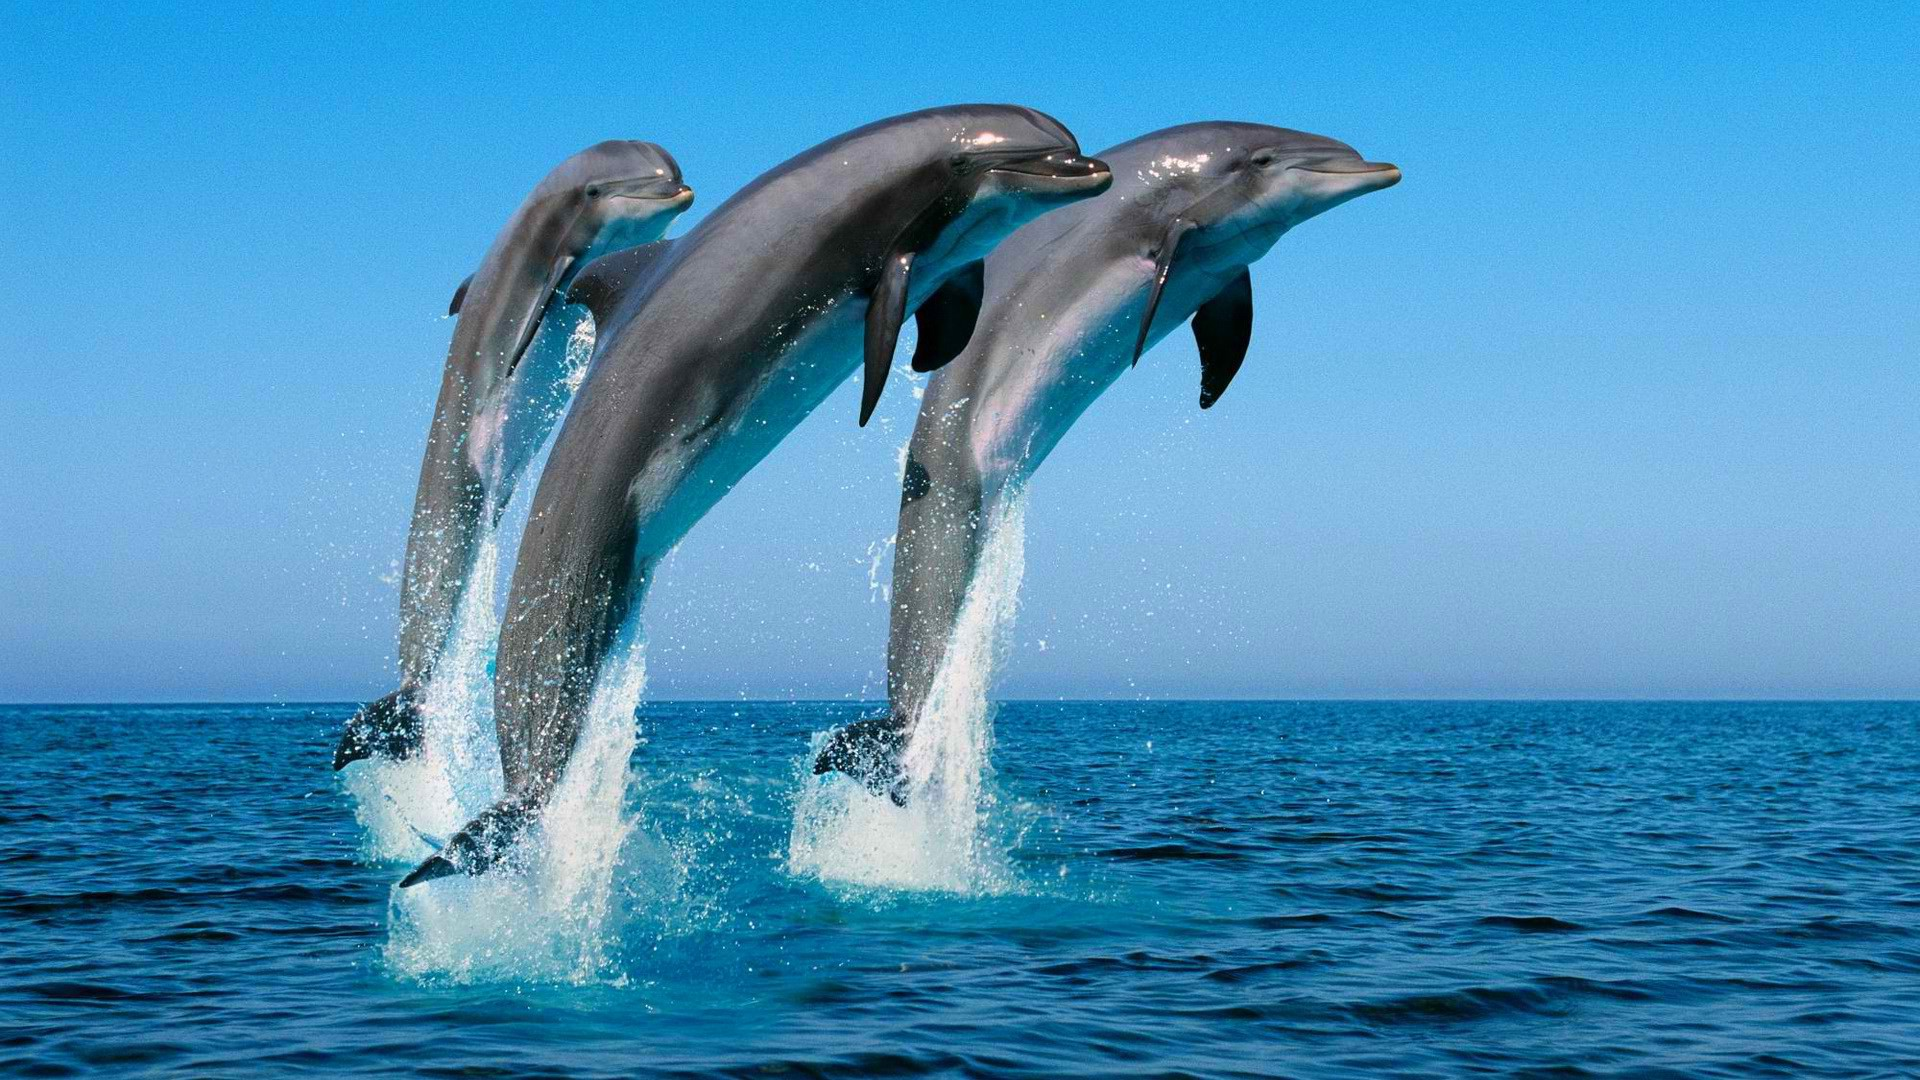 3d Dolphin Wallpaper Download Animals Dolphin Jumping Sea Splashes Wallpapers Hd